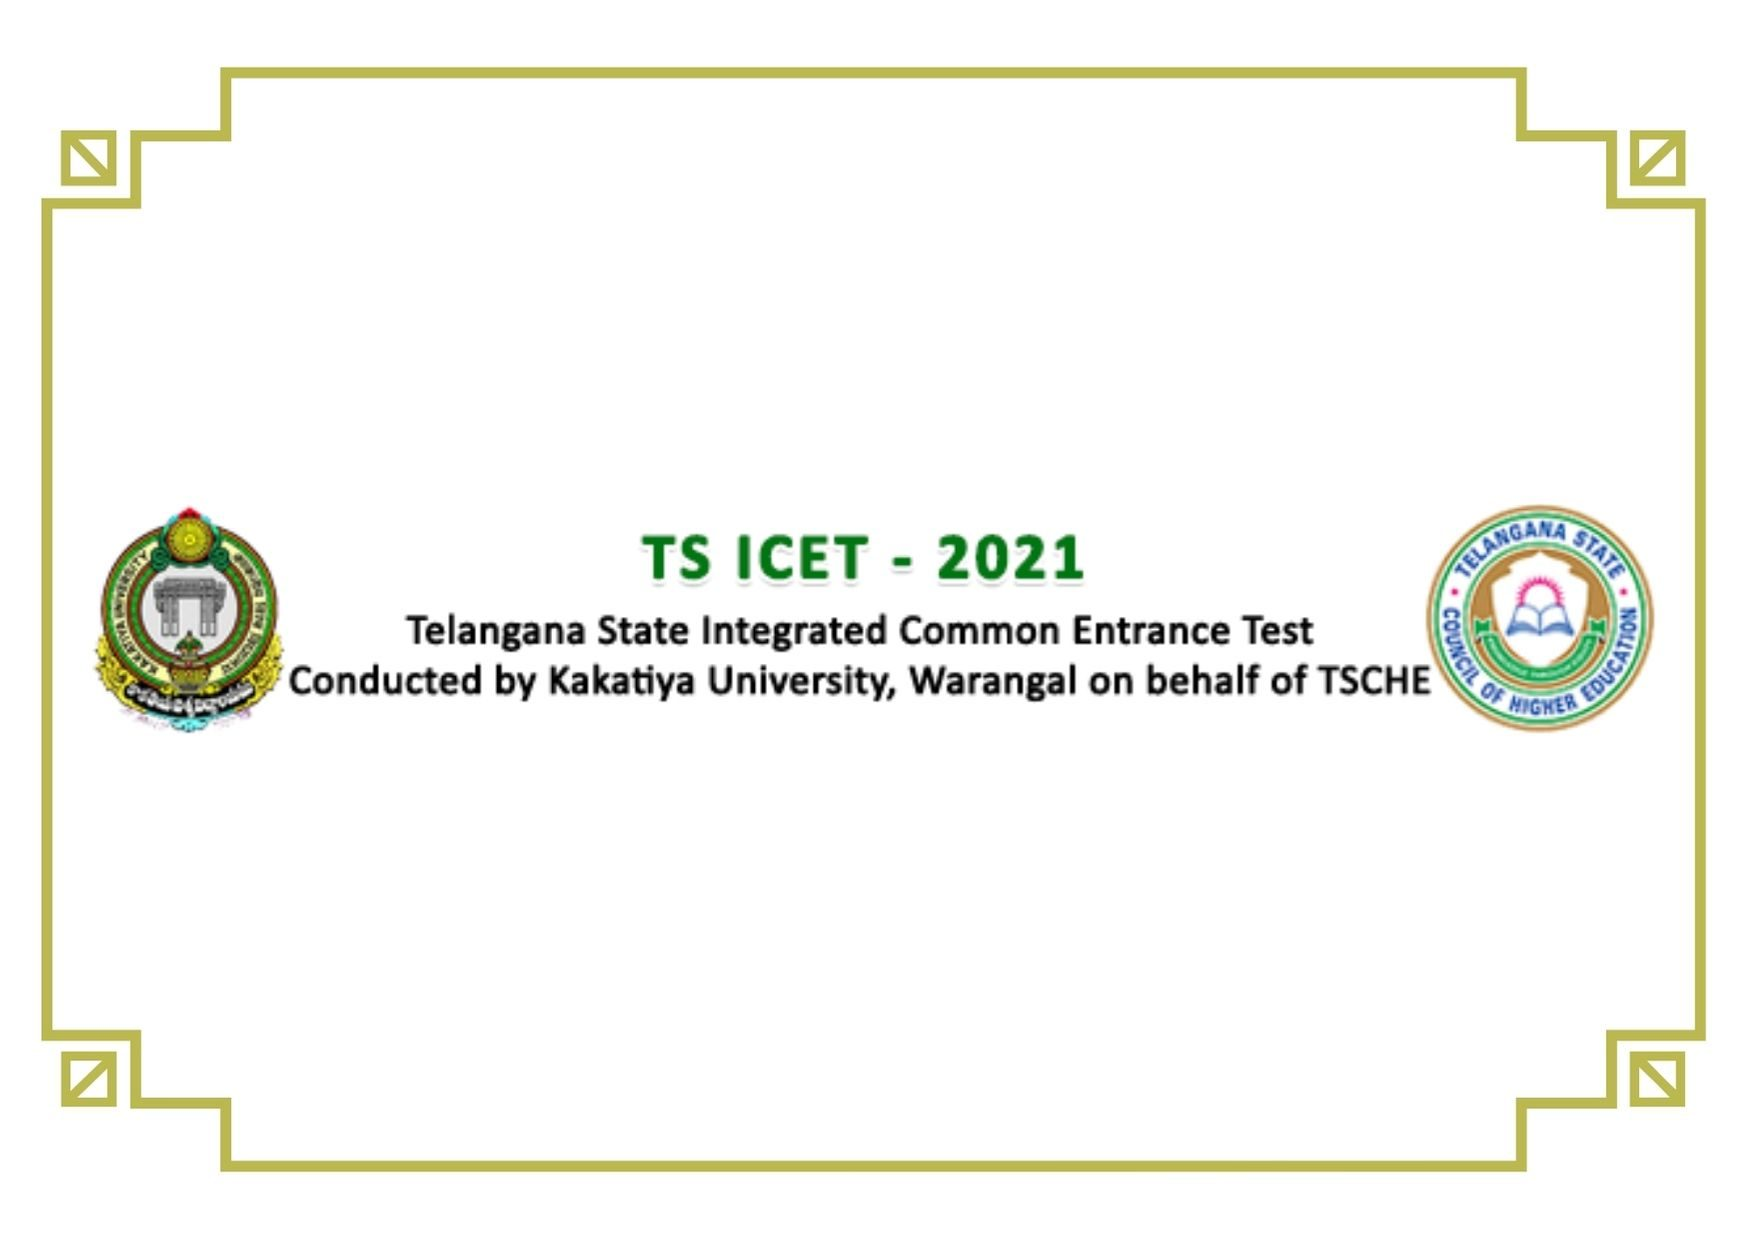 TS ICET 2021 Notification | Eligibility Criteria Apply Online at icet.tsche.ac.in